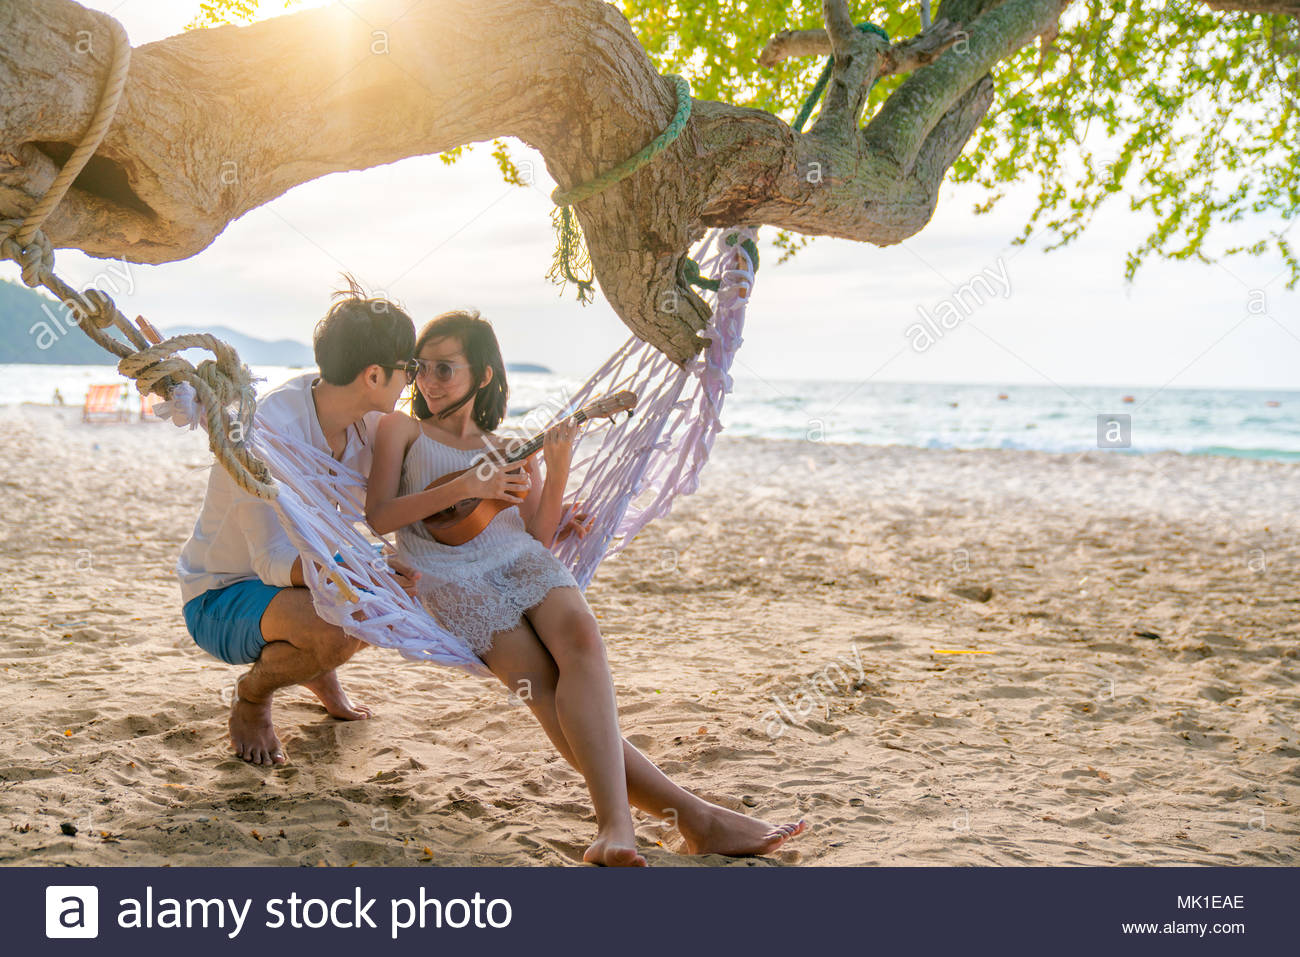 Romantic couple is sitting and kissing on sea beach on rope swing . Family vacation on honeymoon. Love and relationship - Stock Image